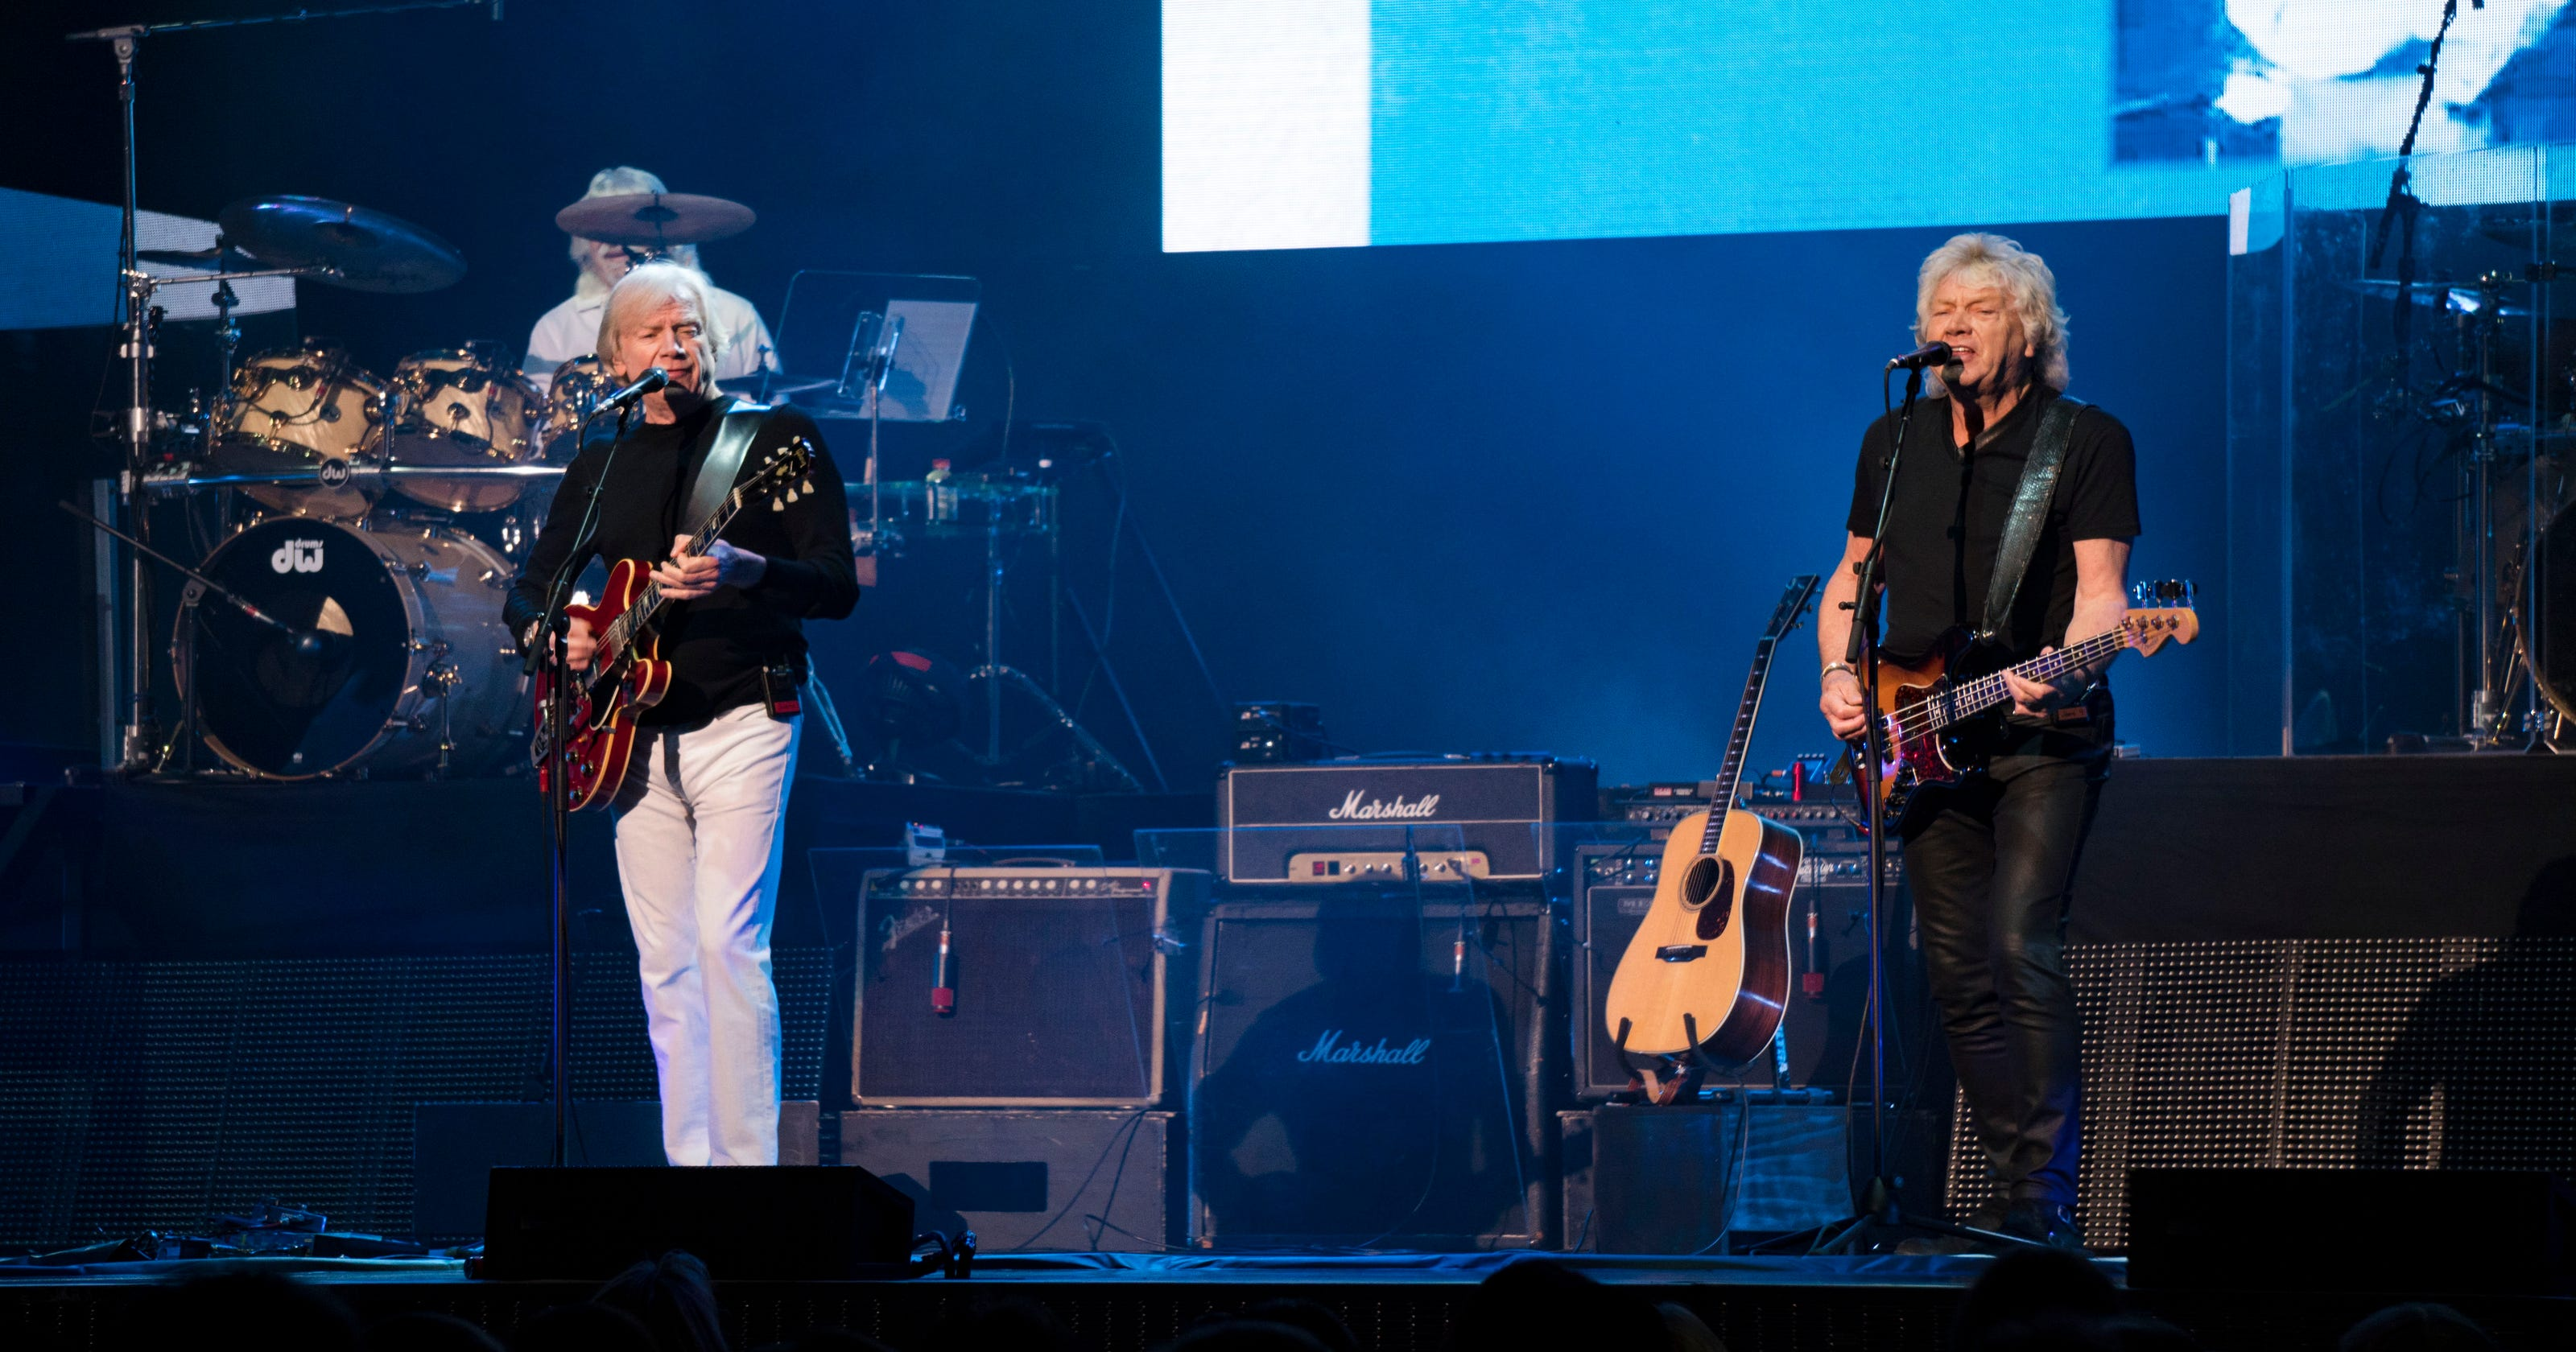 Review: Moody Blues fall flat on tour debut celebrating 50th